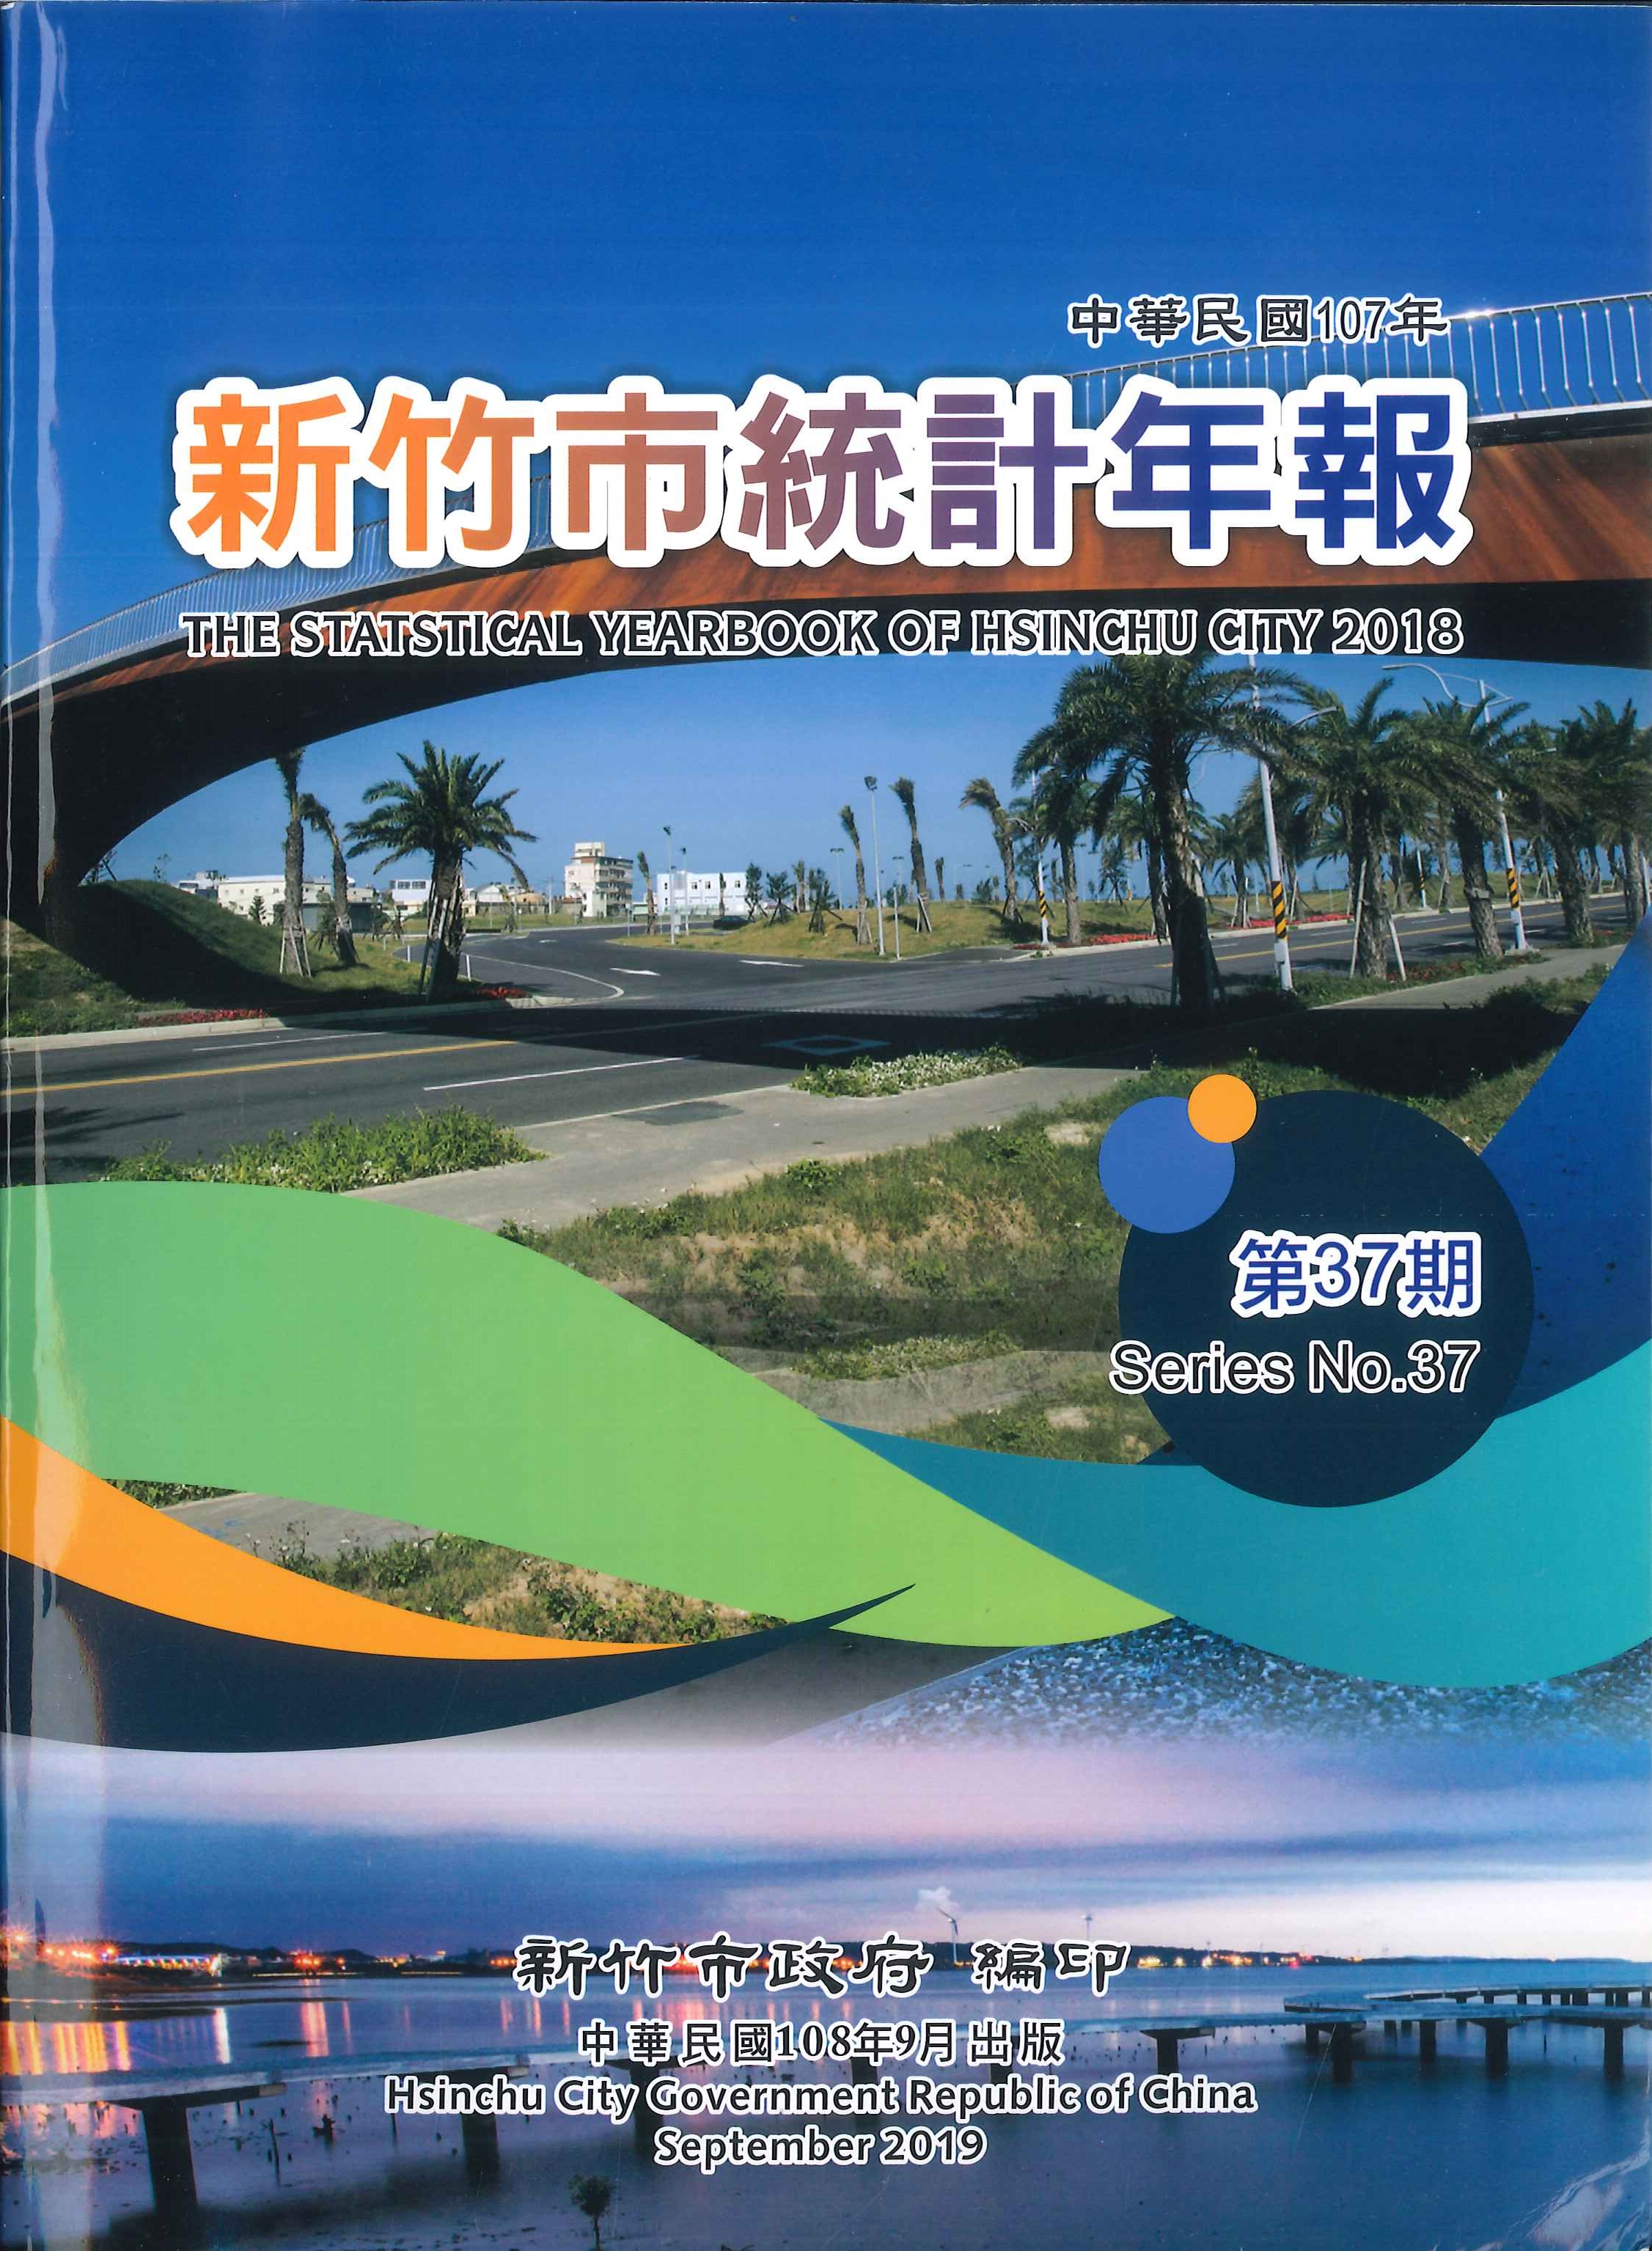 新竹市統計年報.2018=The statistical yearbook of Hsinchu City